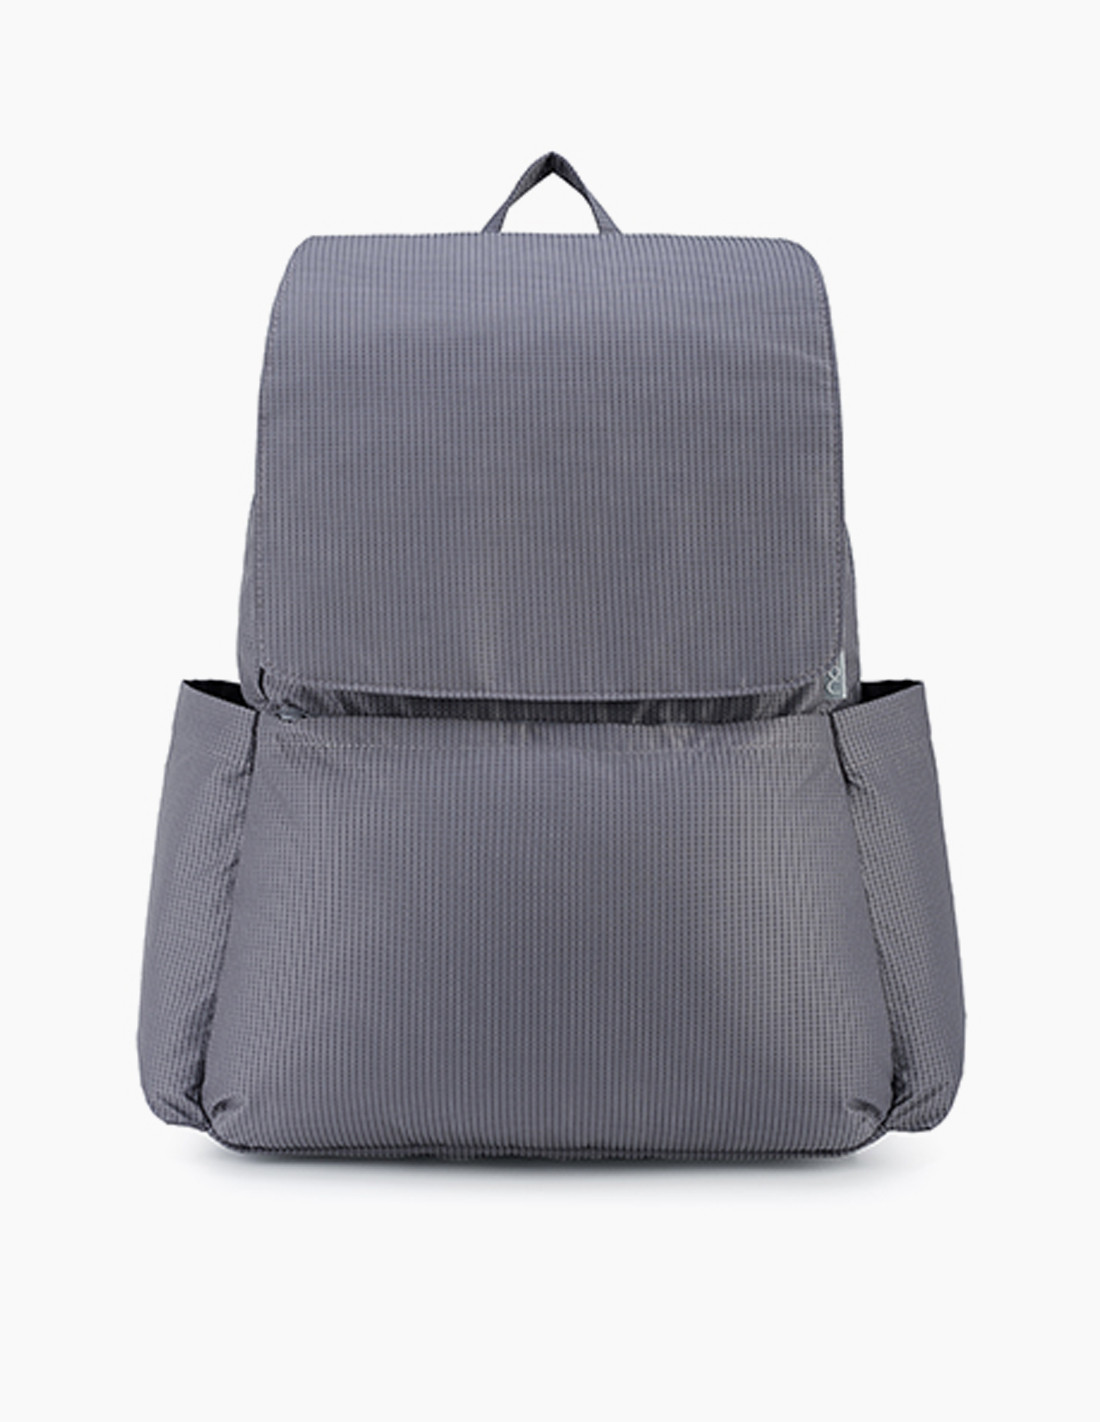 30f86d11b6a7 Lightweight L Backpack Color Plain grey